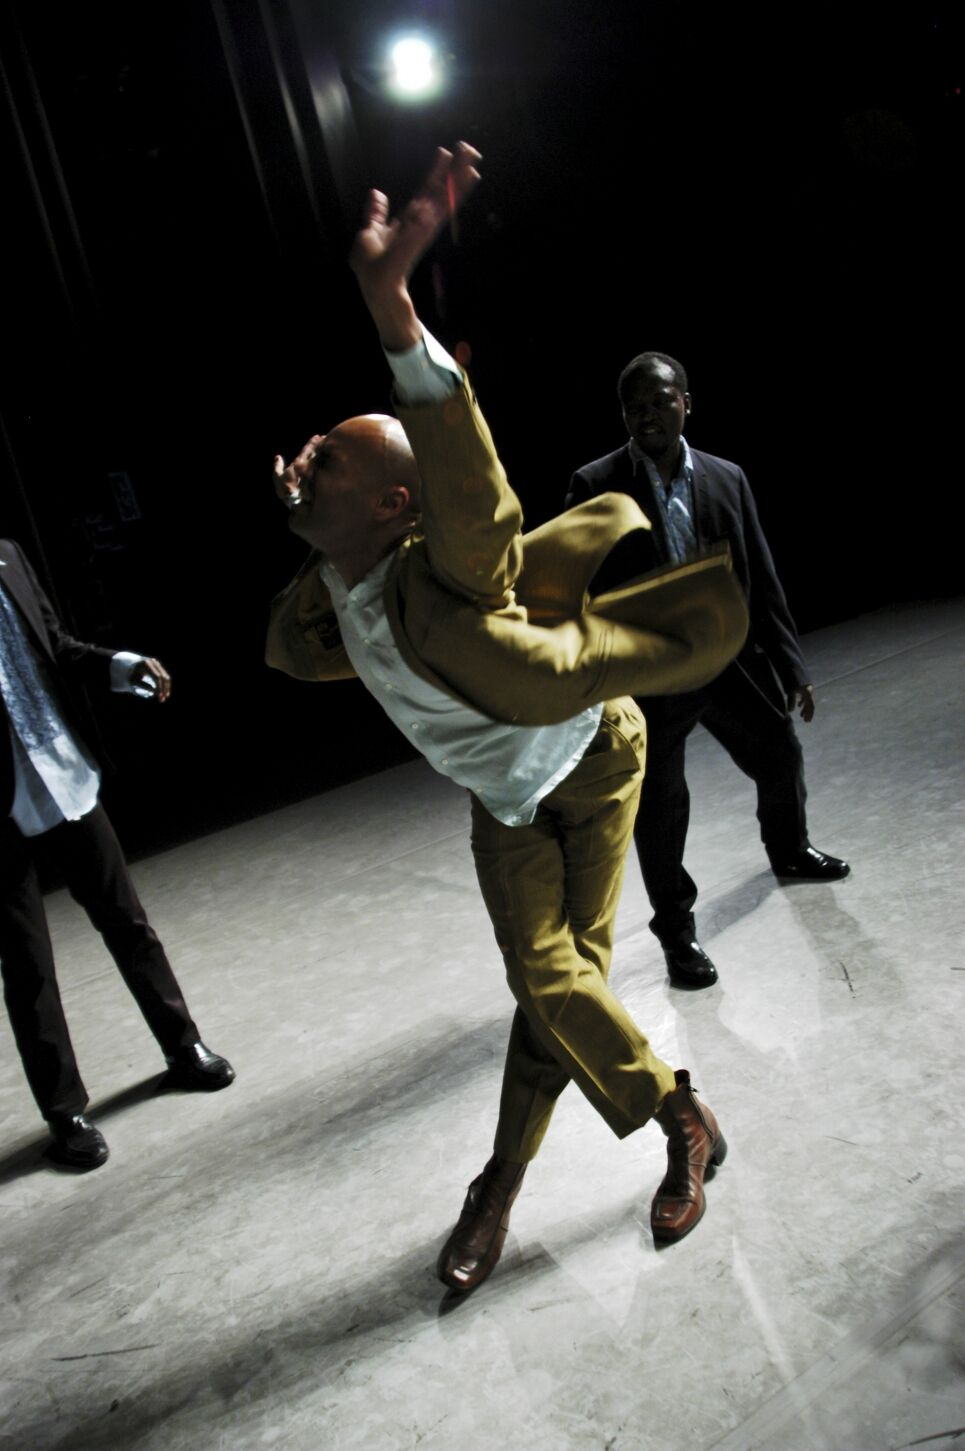 Photograph byDan Merlo. Courtesy of the artist and Velocity Dance Center.